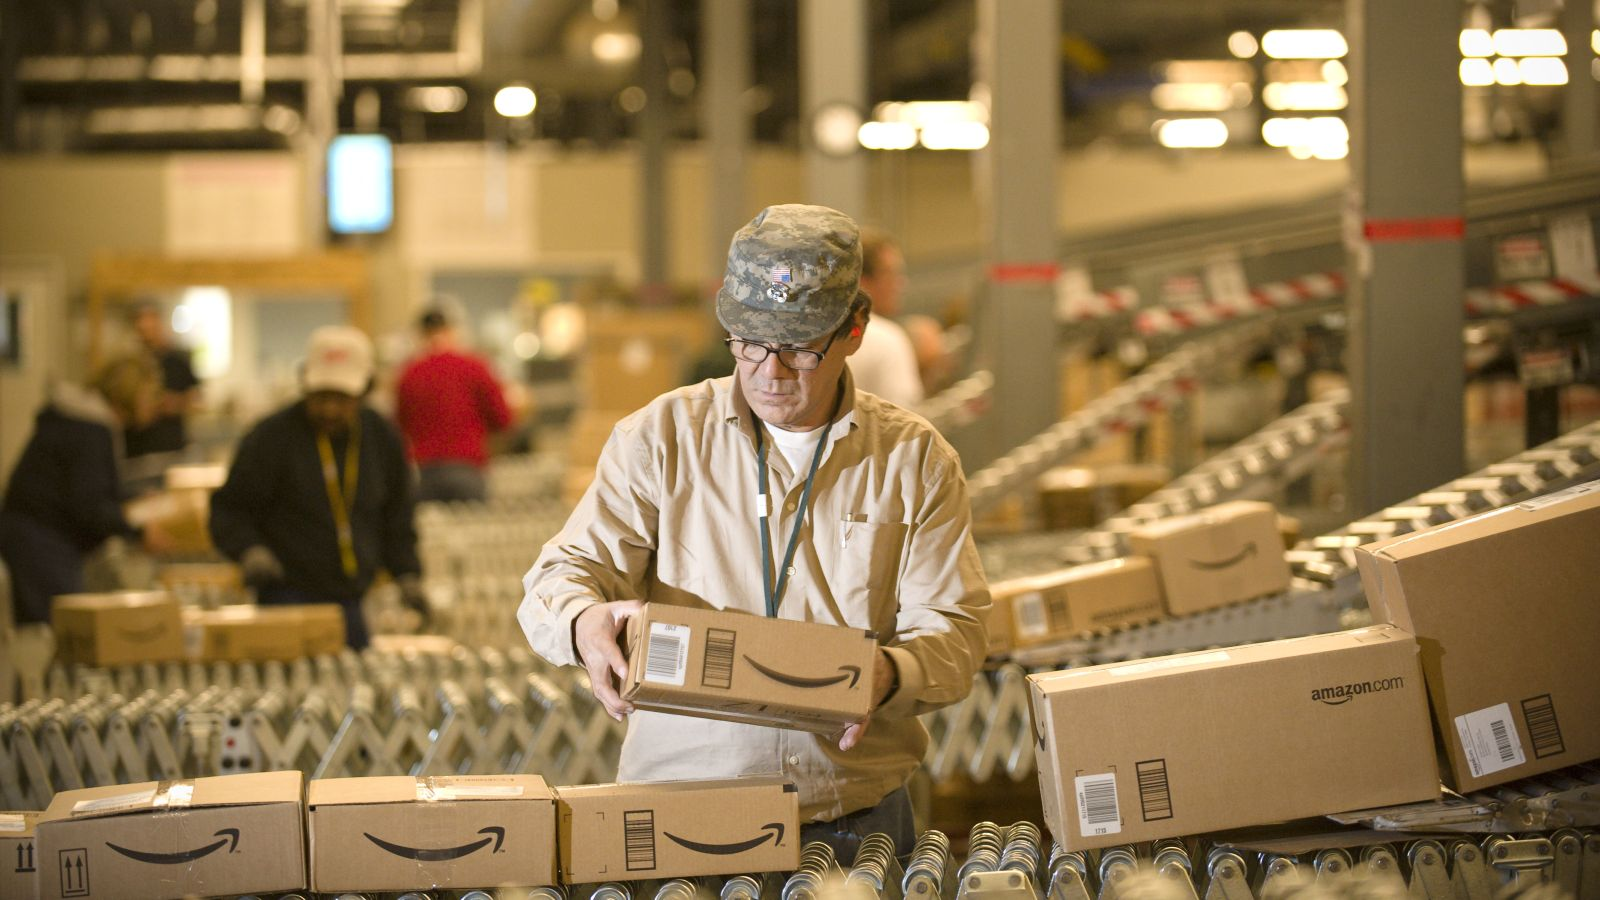 Amazon operates more in-house brands than you think